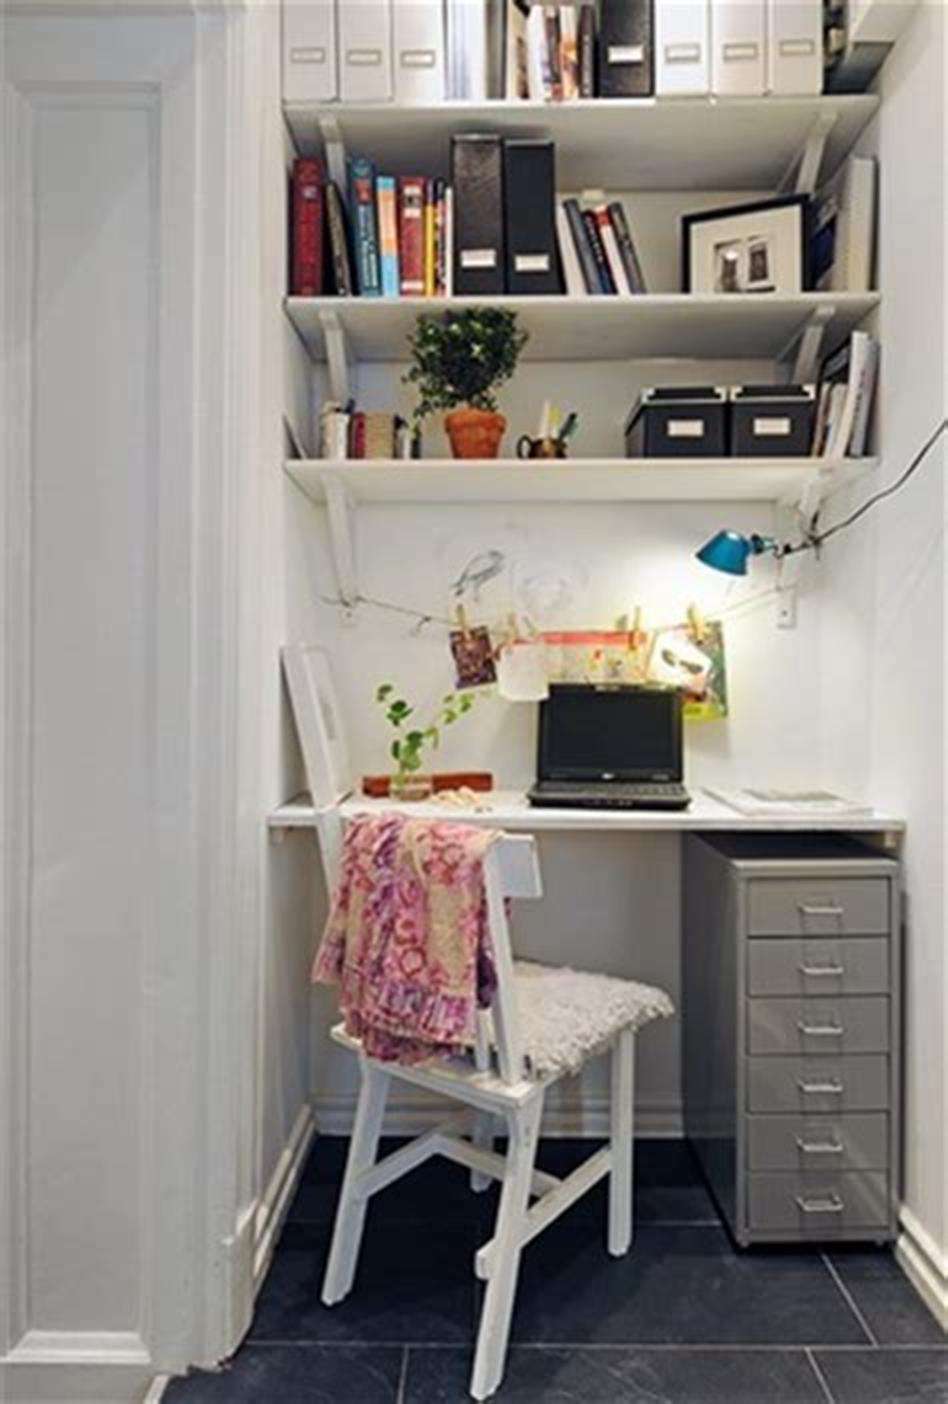 50 Best Small Space Office Decorating Ideas On a Budget 2019 37